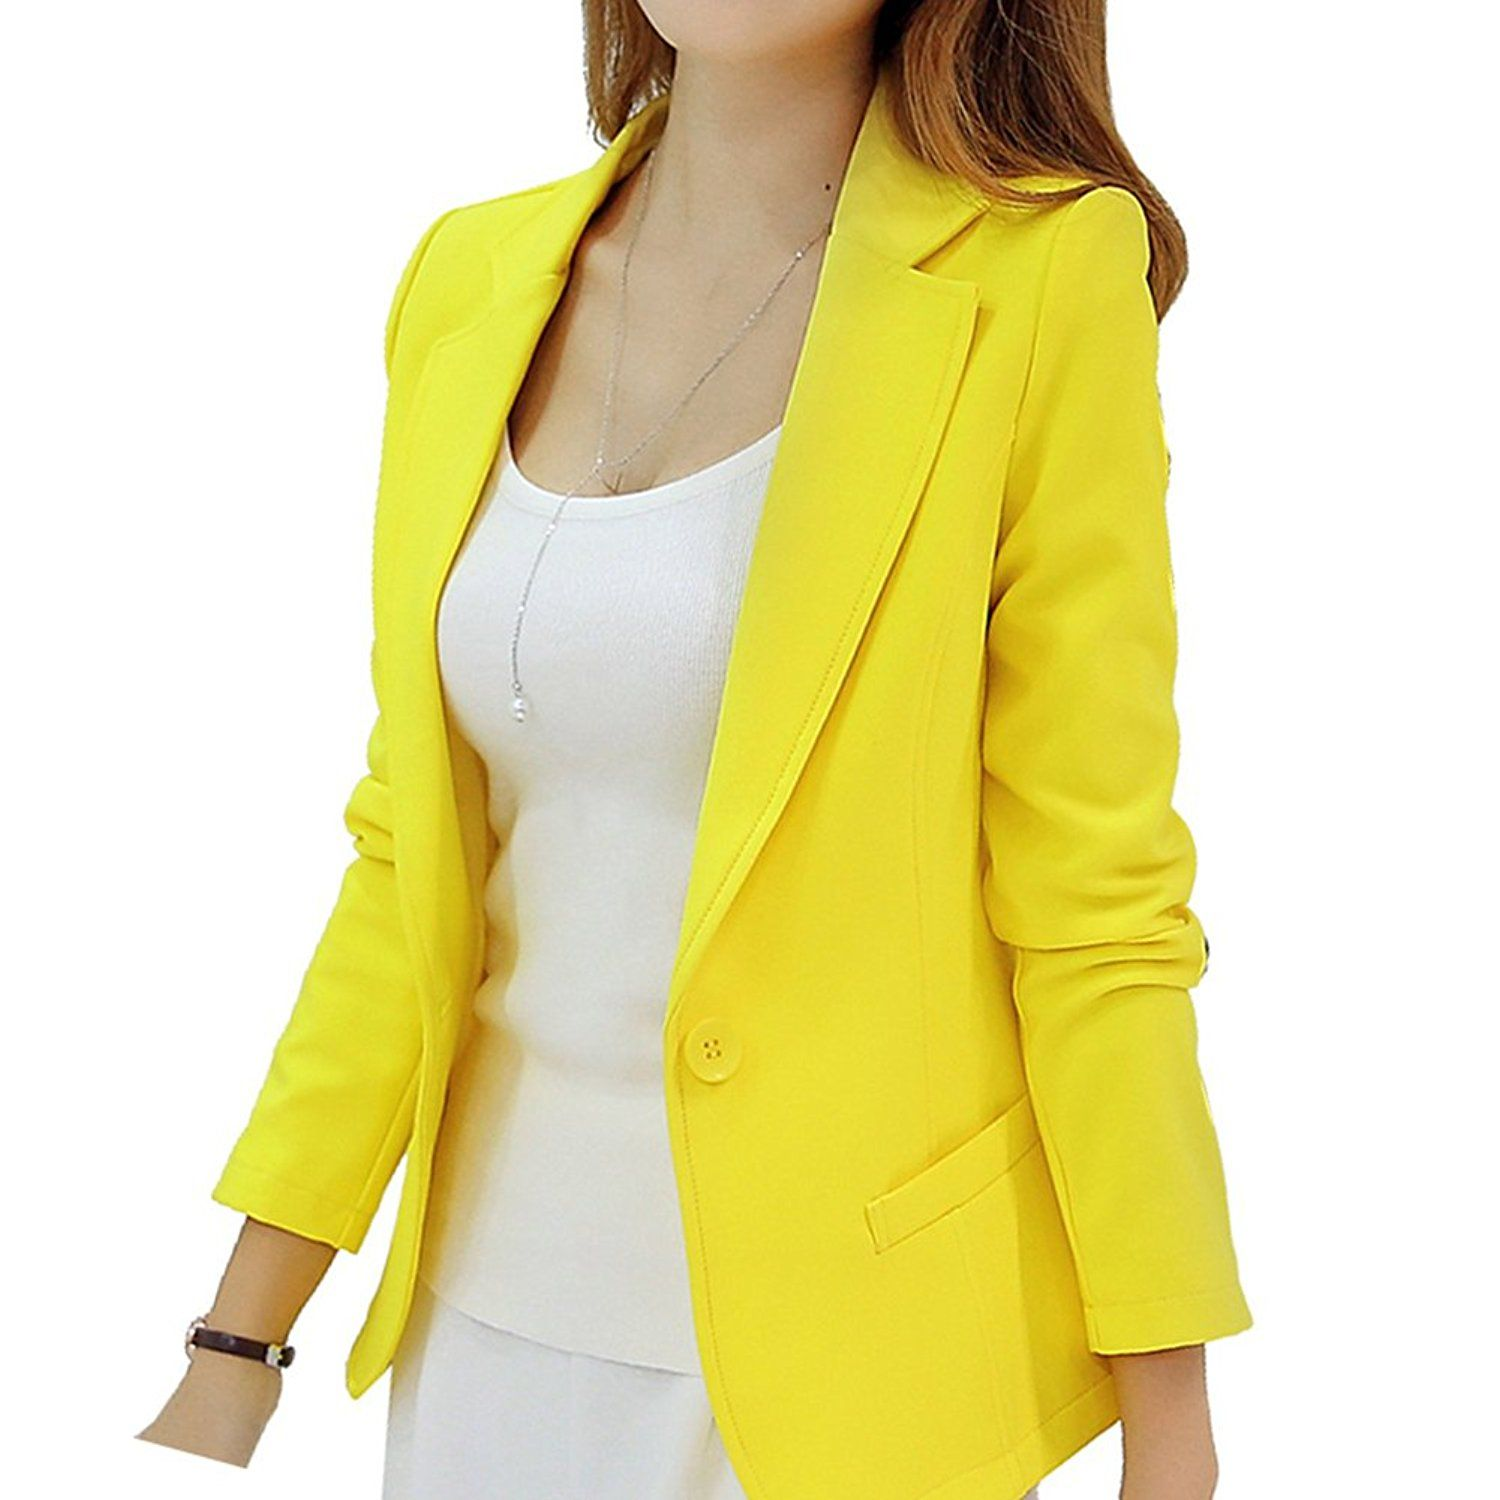 c293be75c15 HaoMing Long Sleeve Solid Color Casual Work Office Blazer Jacket for Women  Girls     This is an Amazon Affiliate link. For more information